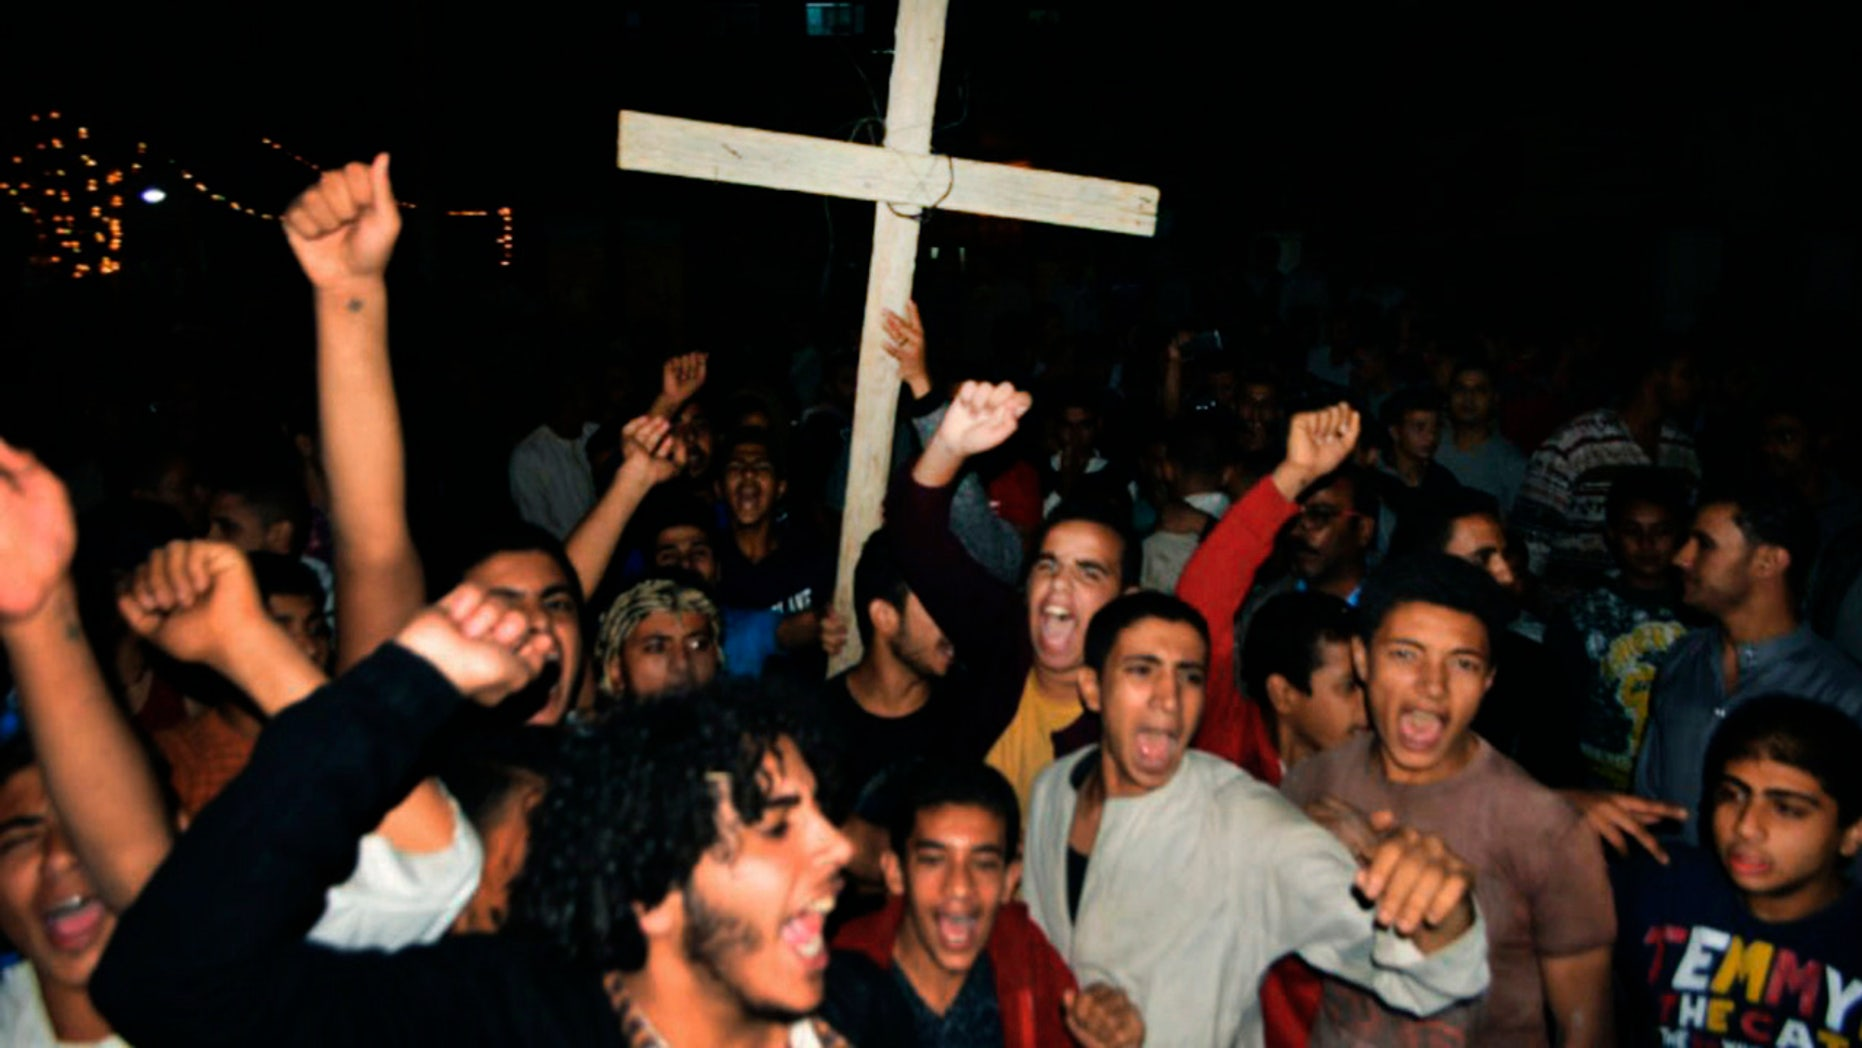 Coptic Christians chant slogans during a protest following an attack on a bus carrying Christian pilgrims on their way to a remote desert monastery in Minya Egypt Friday Nov. 2 2018